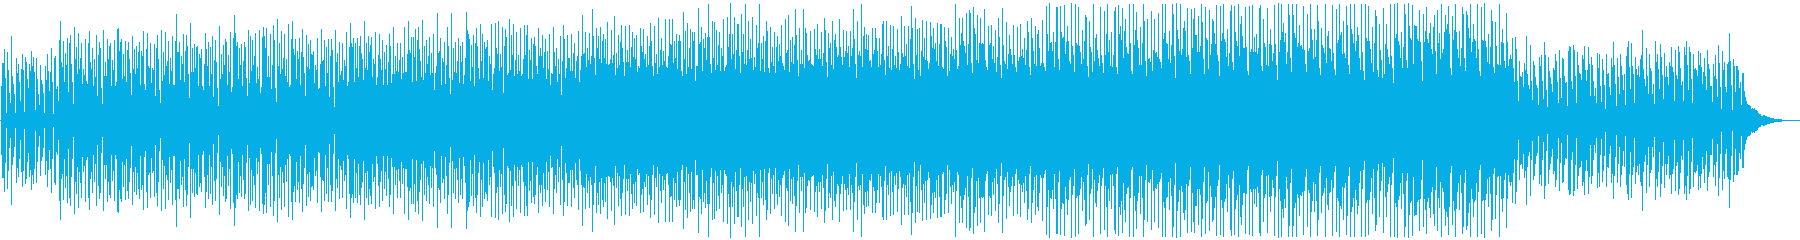 Refreshing, reliable, secure, cleanliness, corporate's reproduced waveform